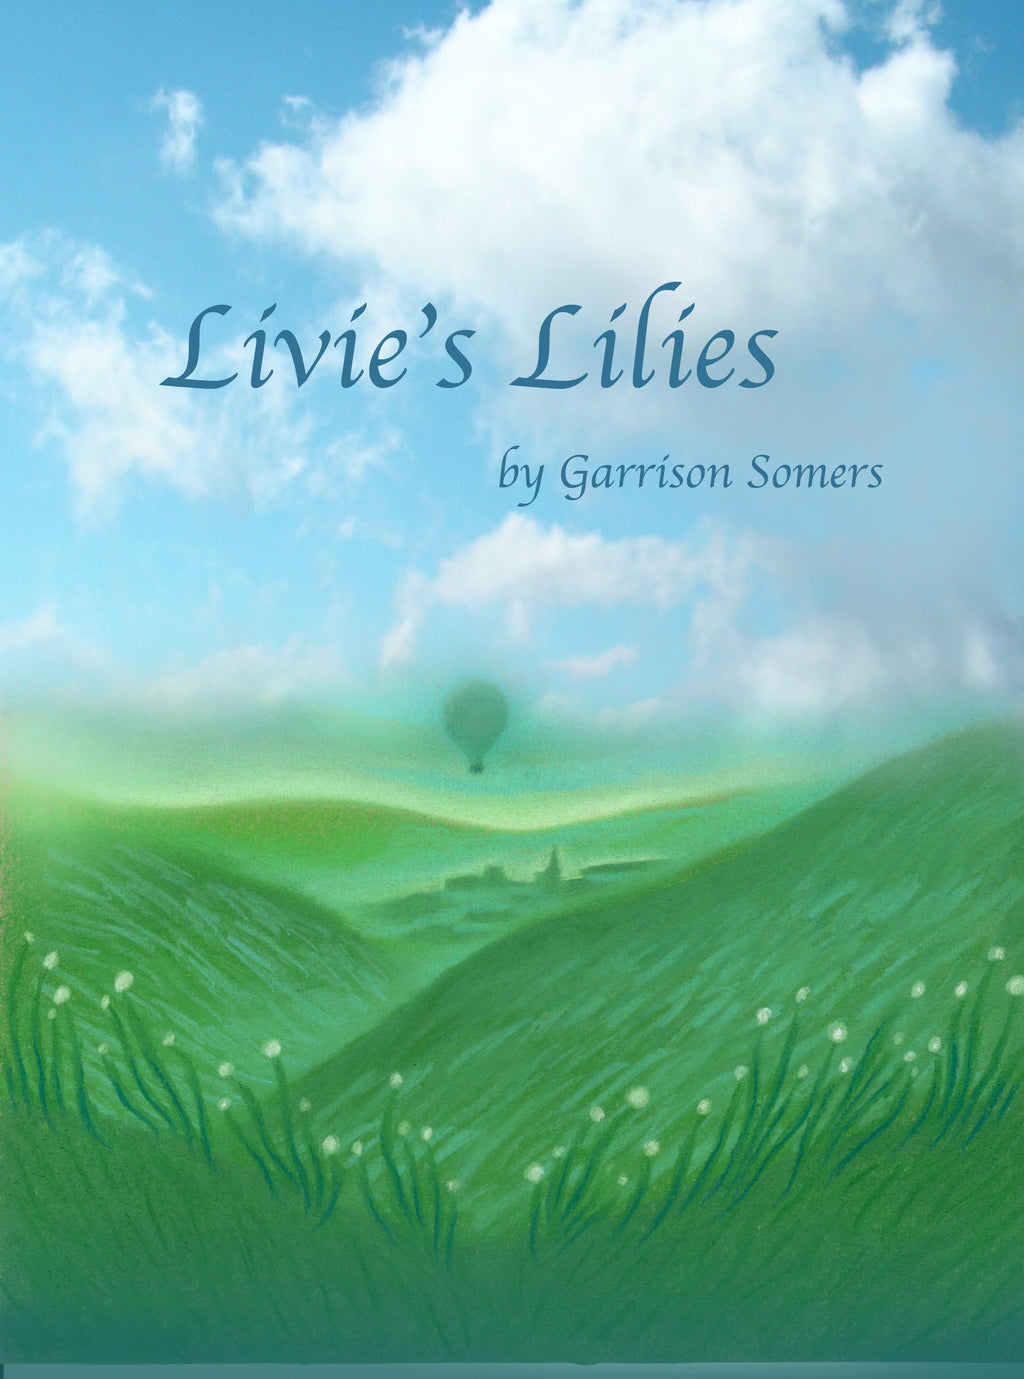 Livie's Lilies chapter book by Garrison Somers